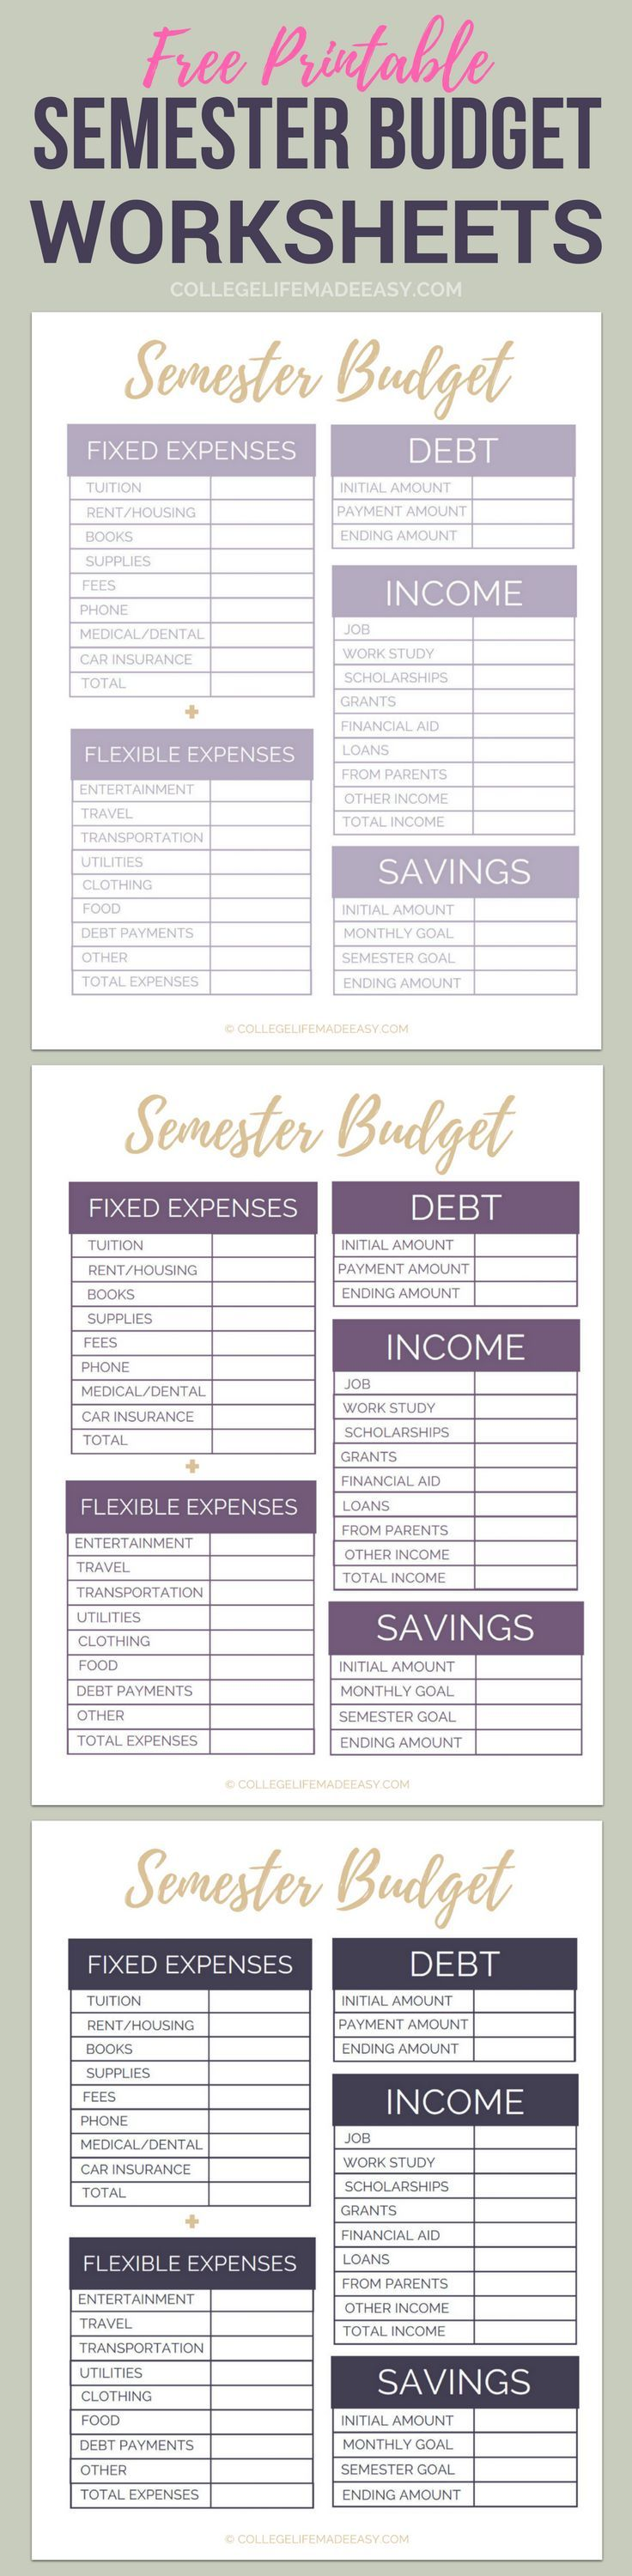 Free Printable College Semester Budget Worksheets: Organize Your Finances in Minutes! | Free College Student Budget Template | Semester Planner Tracker |